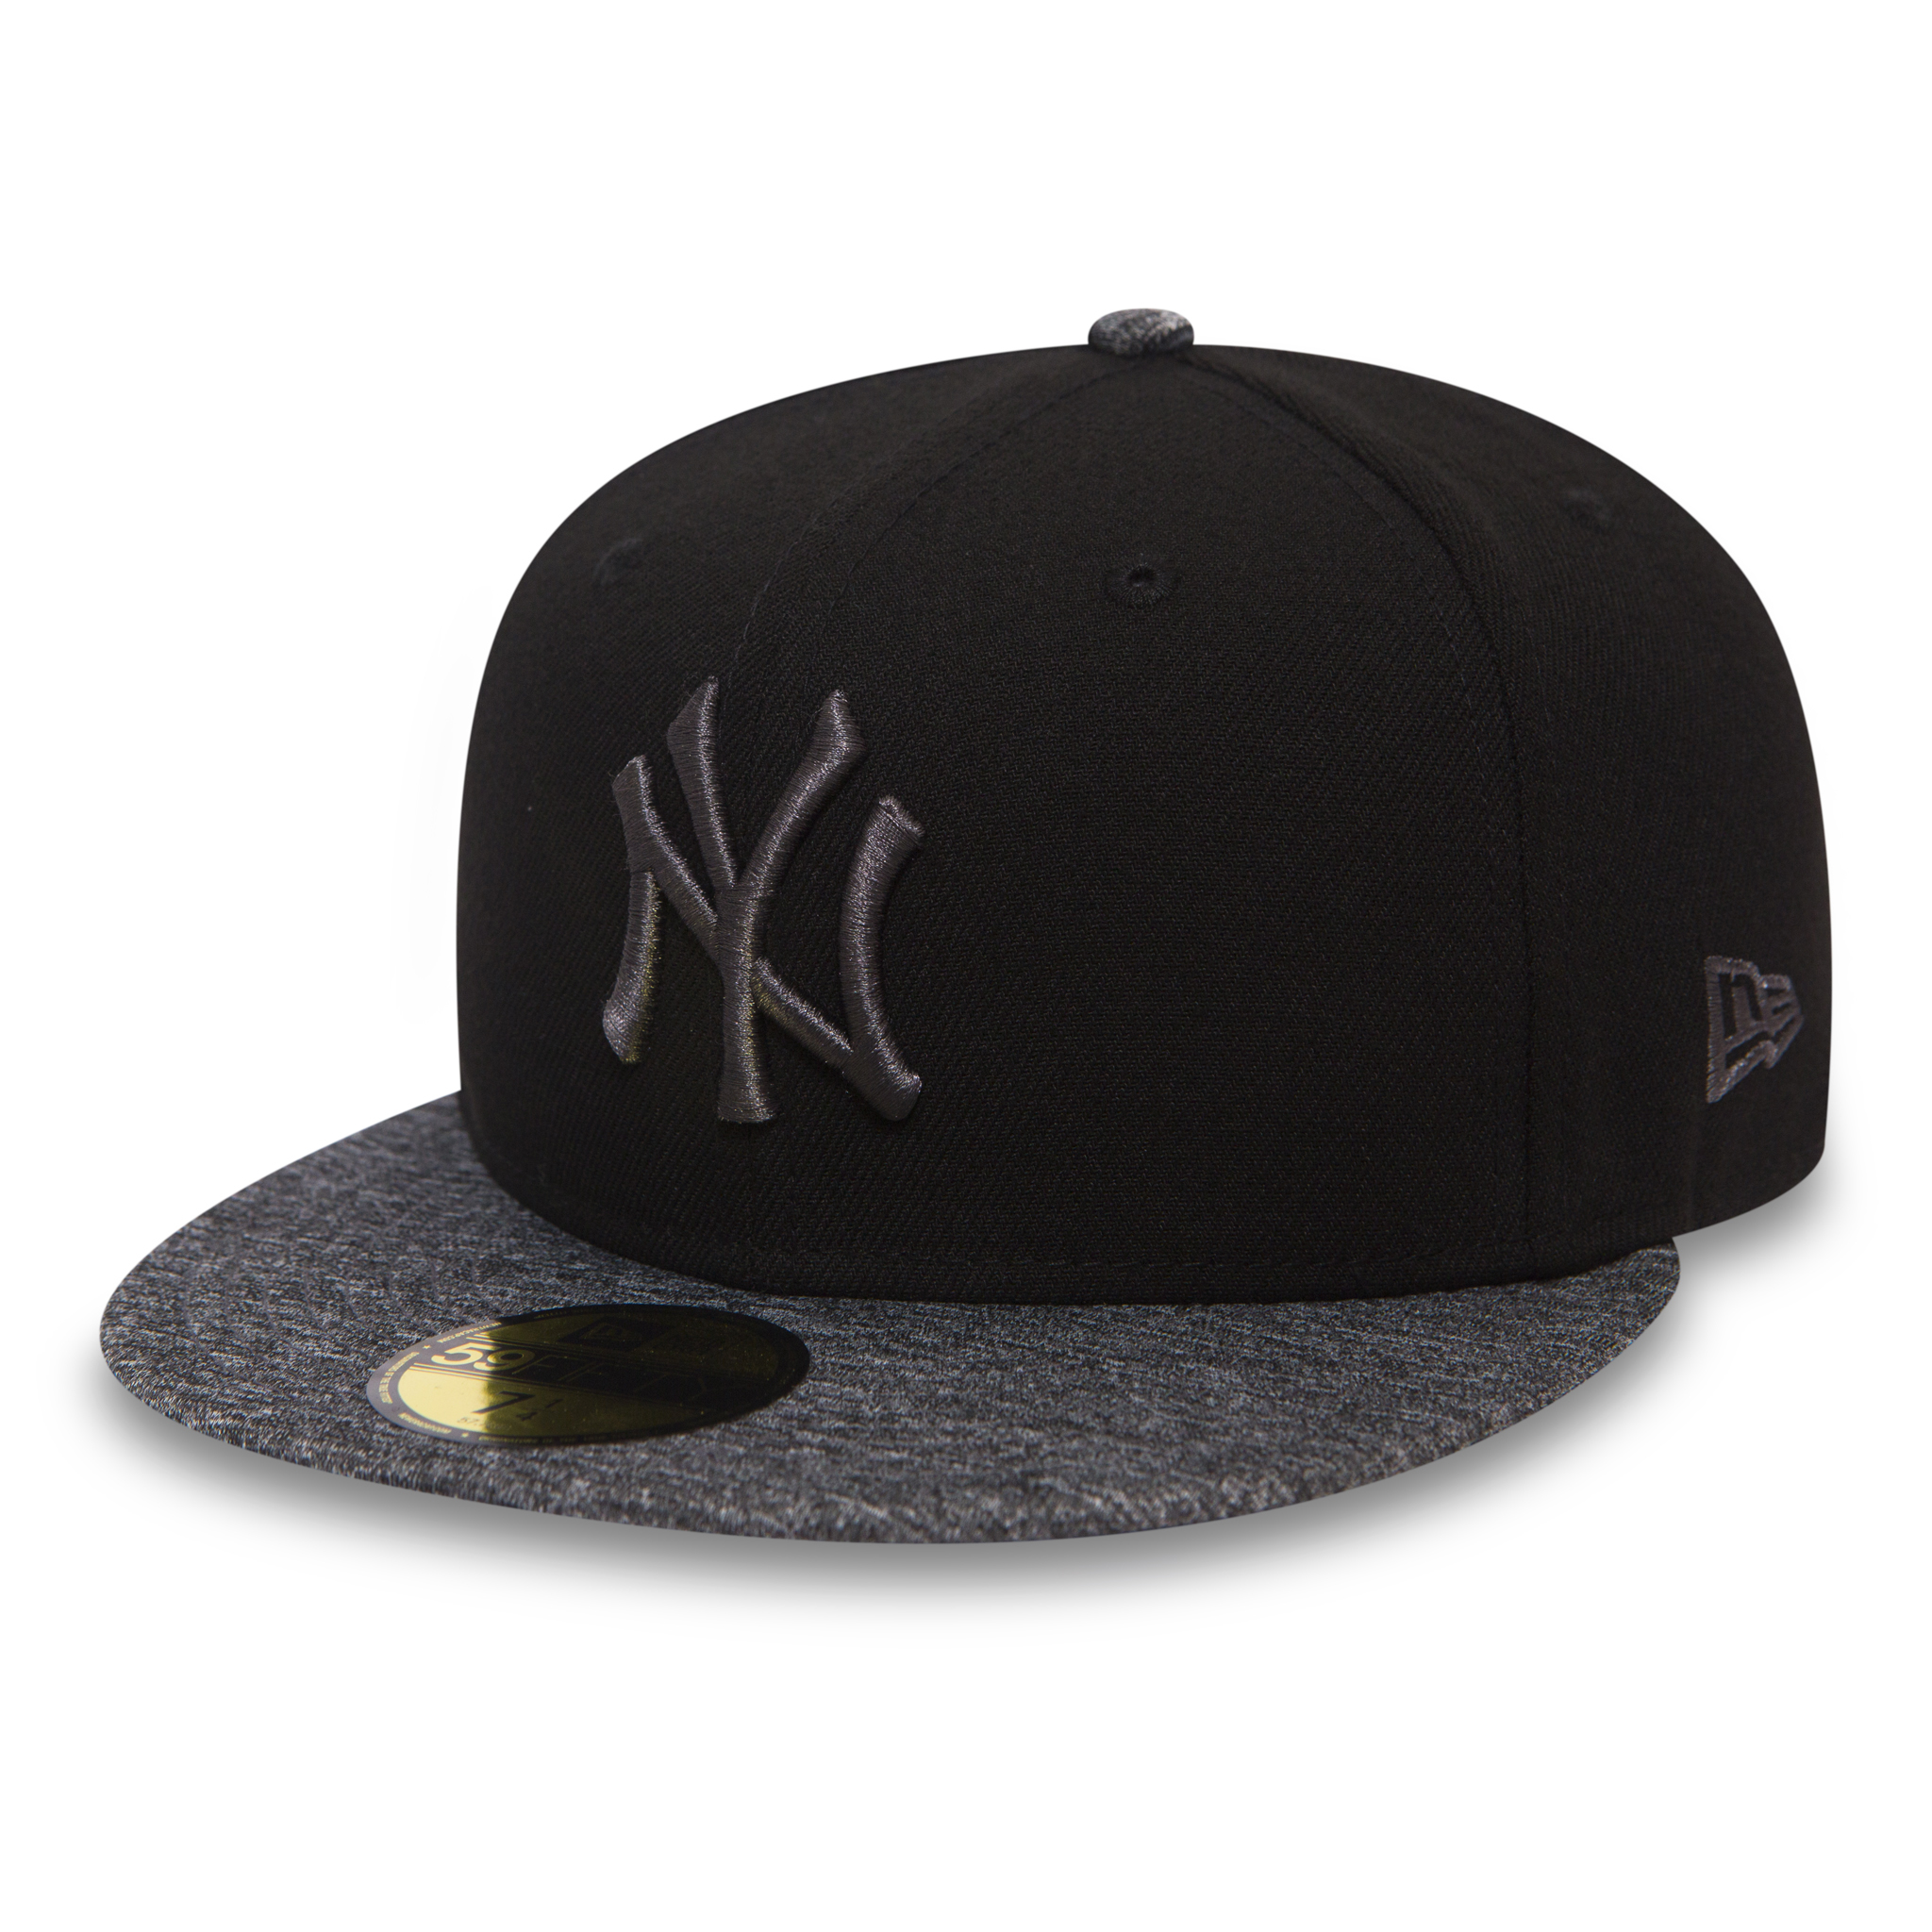 5f4048949365 Casquette NY Yankees Grey Collection 59FIFTY Casquette NY Yankees Grey  Collection 59FIFTY